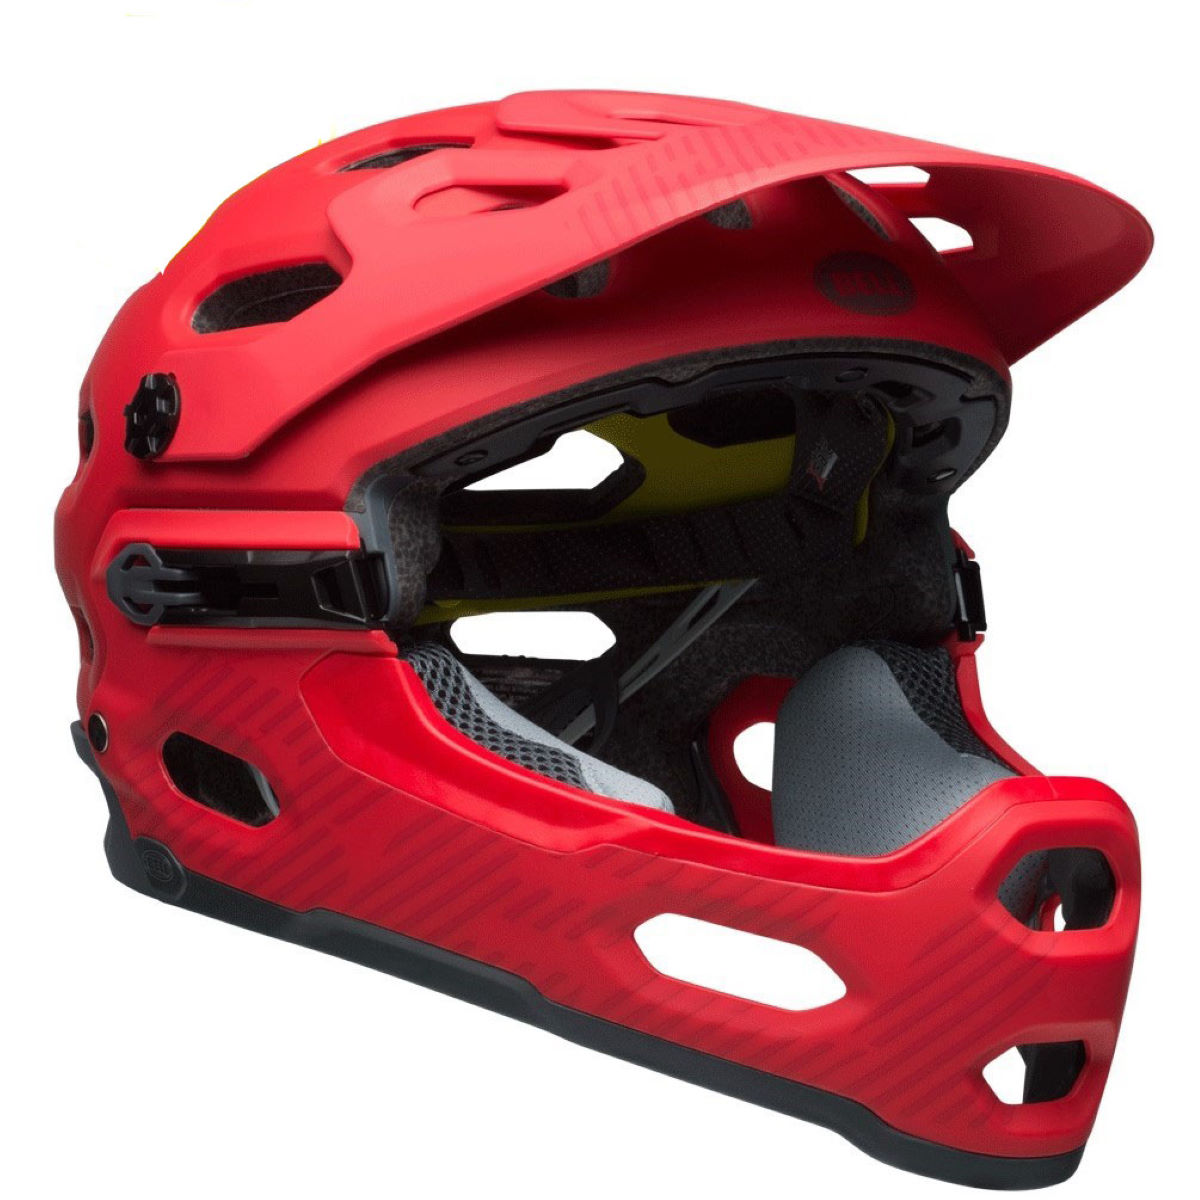 Casque Bell Super 3R MIPS - S Matte Hibiscus Casques